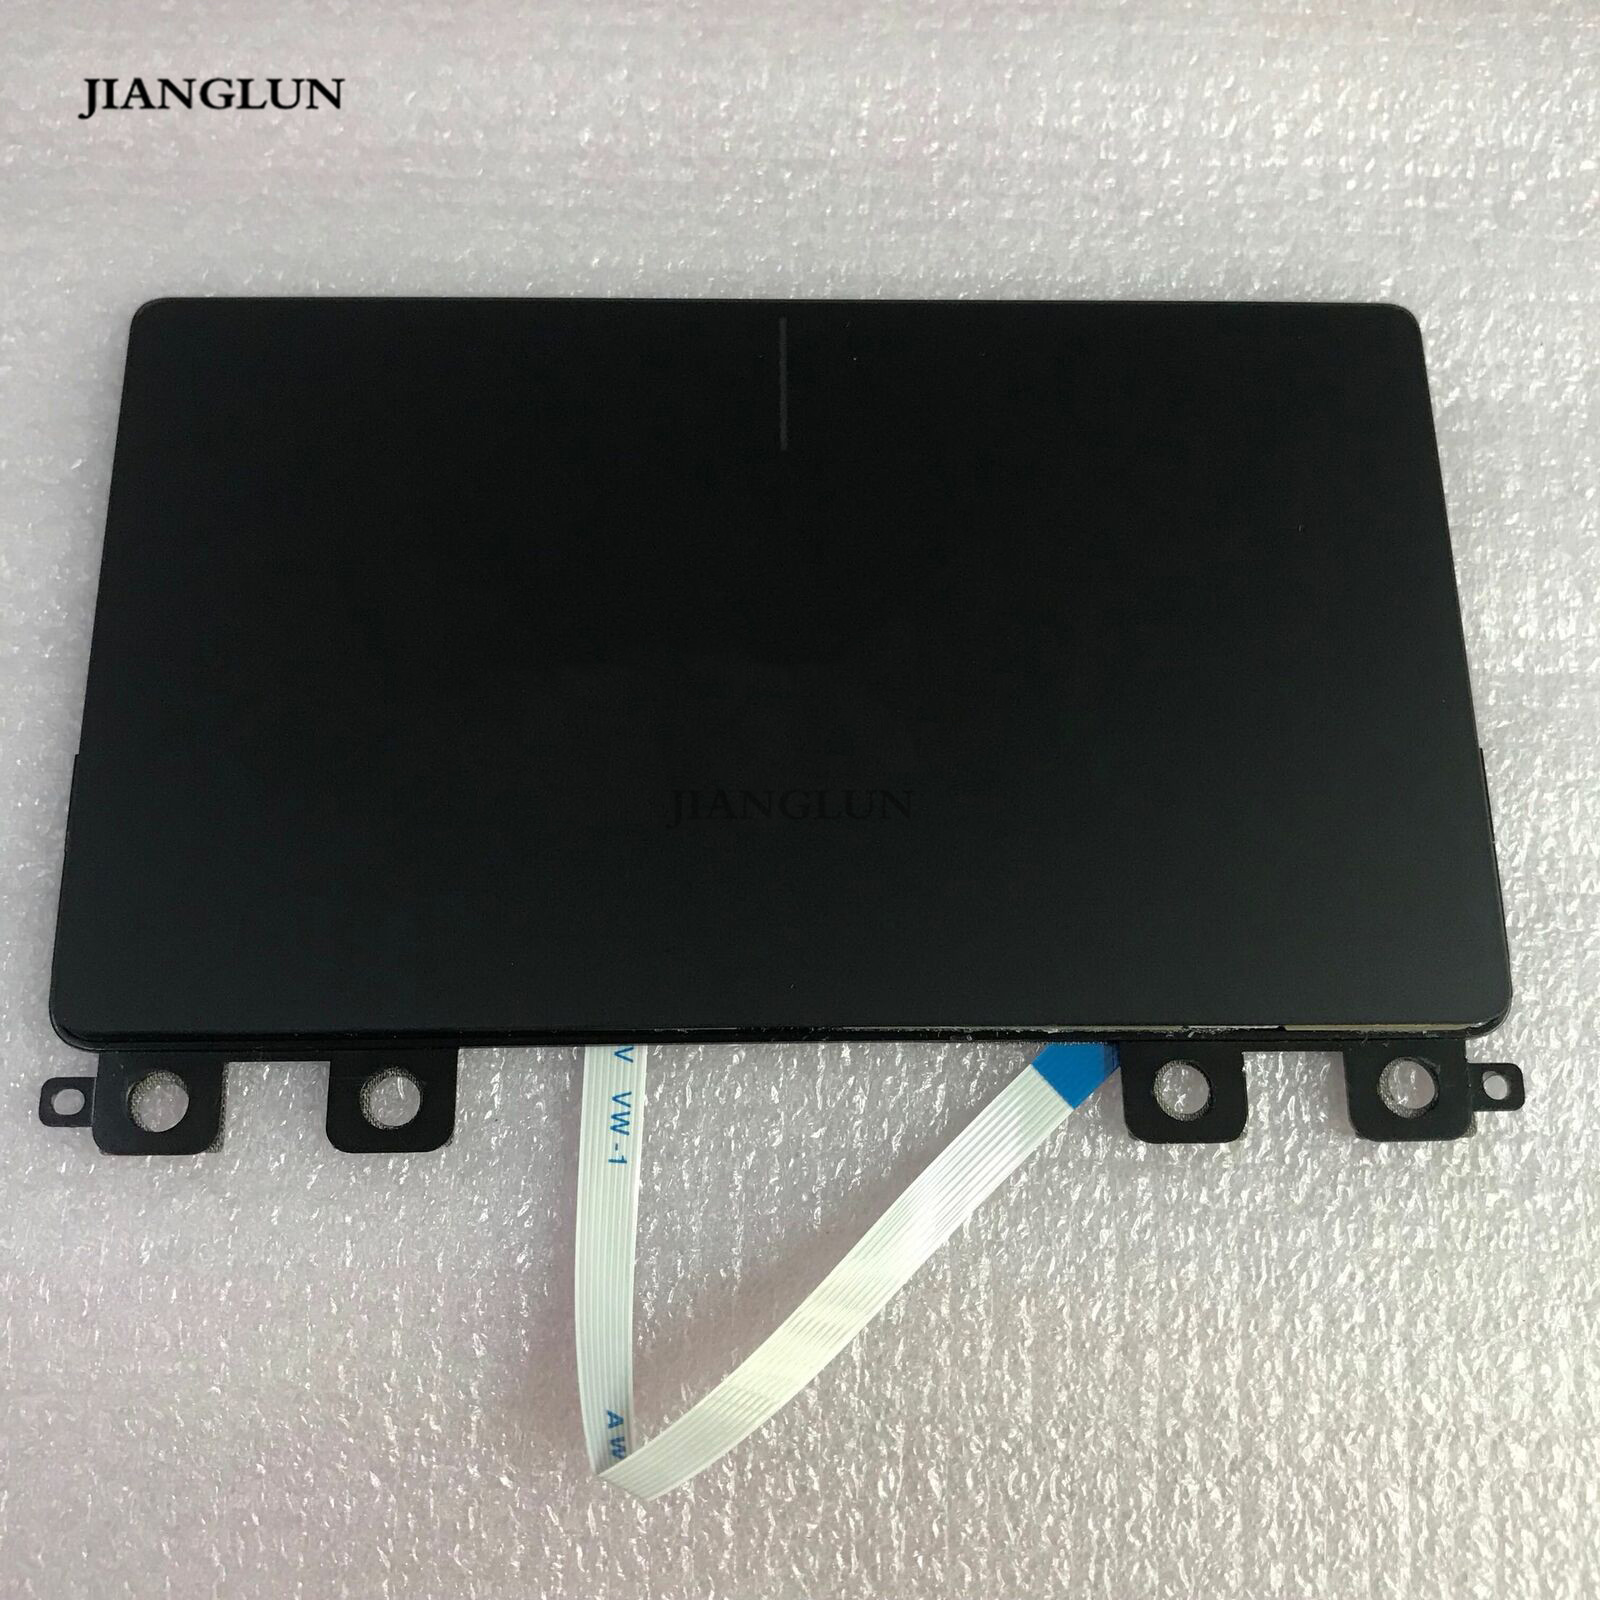 JIANGLUN For Dell XPS 13 9343 9350 9360 Touchpad Trackpad 0P6CK7 TM-P3038